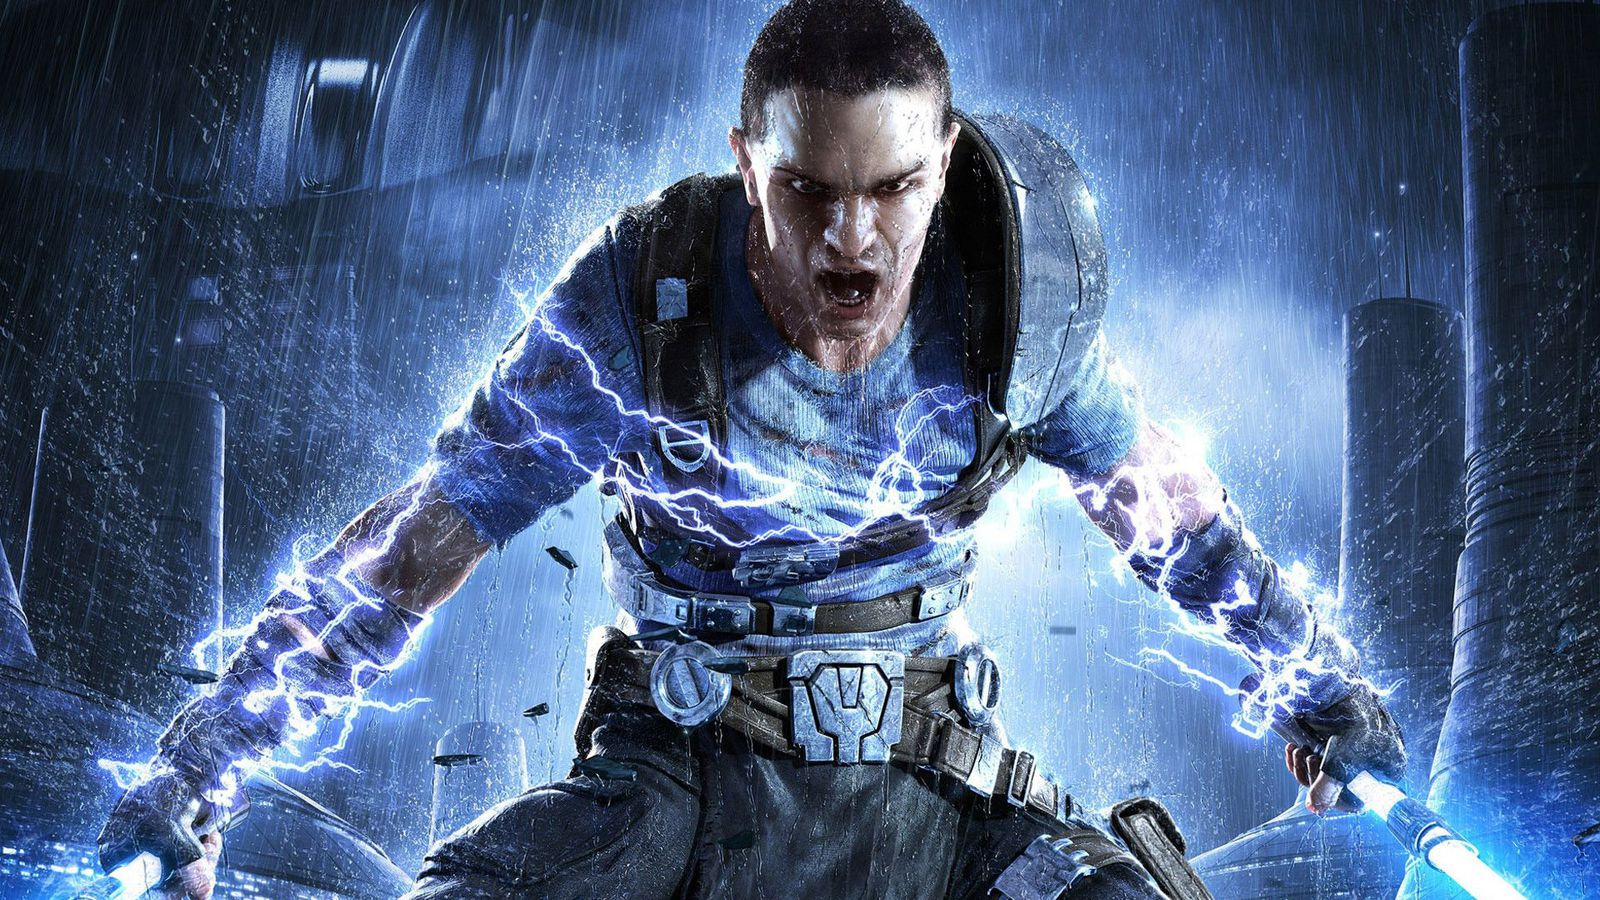 Star Wars The Force Unleashed 2 Wallpapers: Star Wars' Last Great Video Game Character Almost Made It